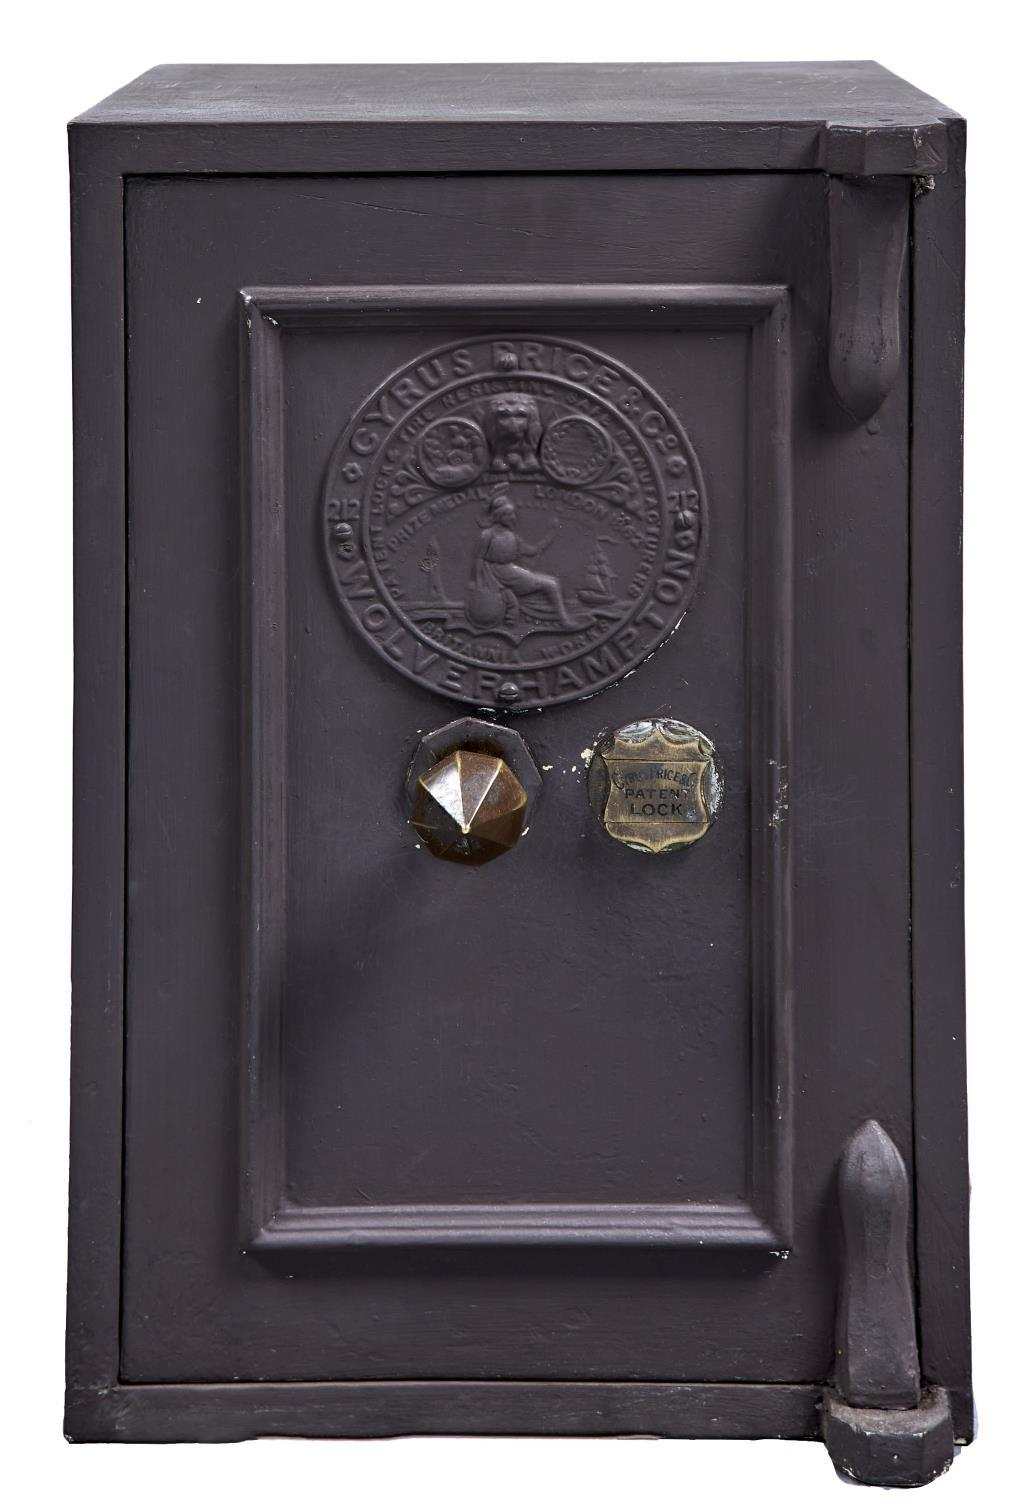 A SMALL SAFE, LATE 19TH C, THE FRONT BEARING CIRCULAR PLATE INSCRIBED CYRUS, PRICE & CO